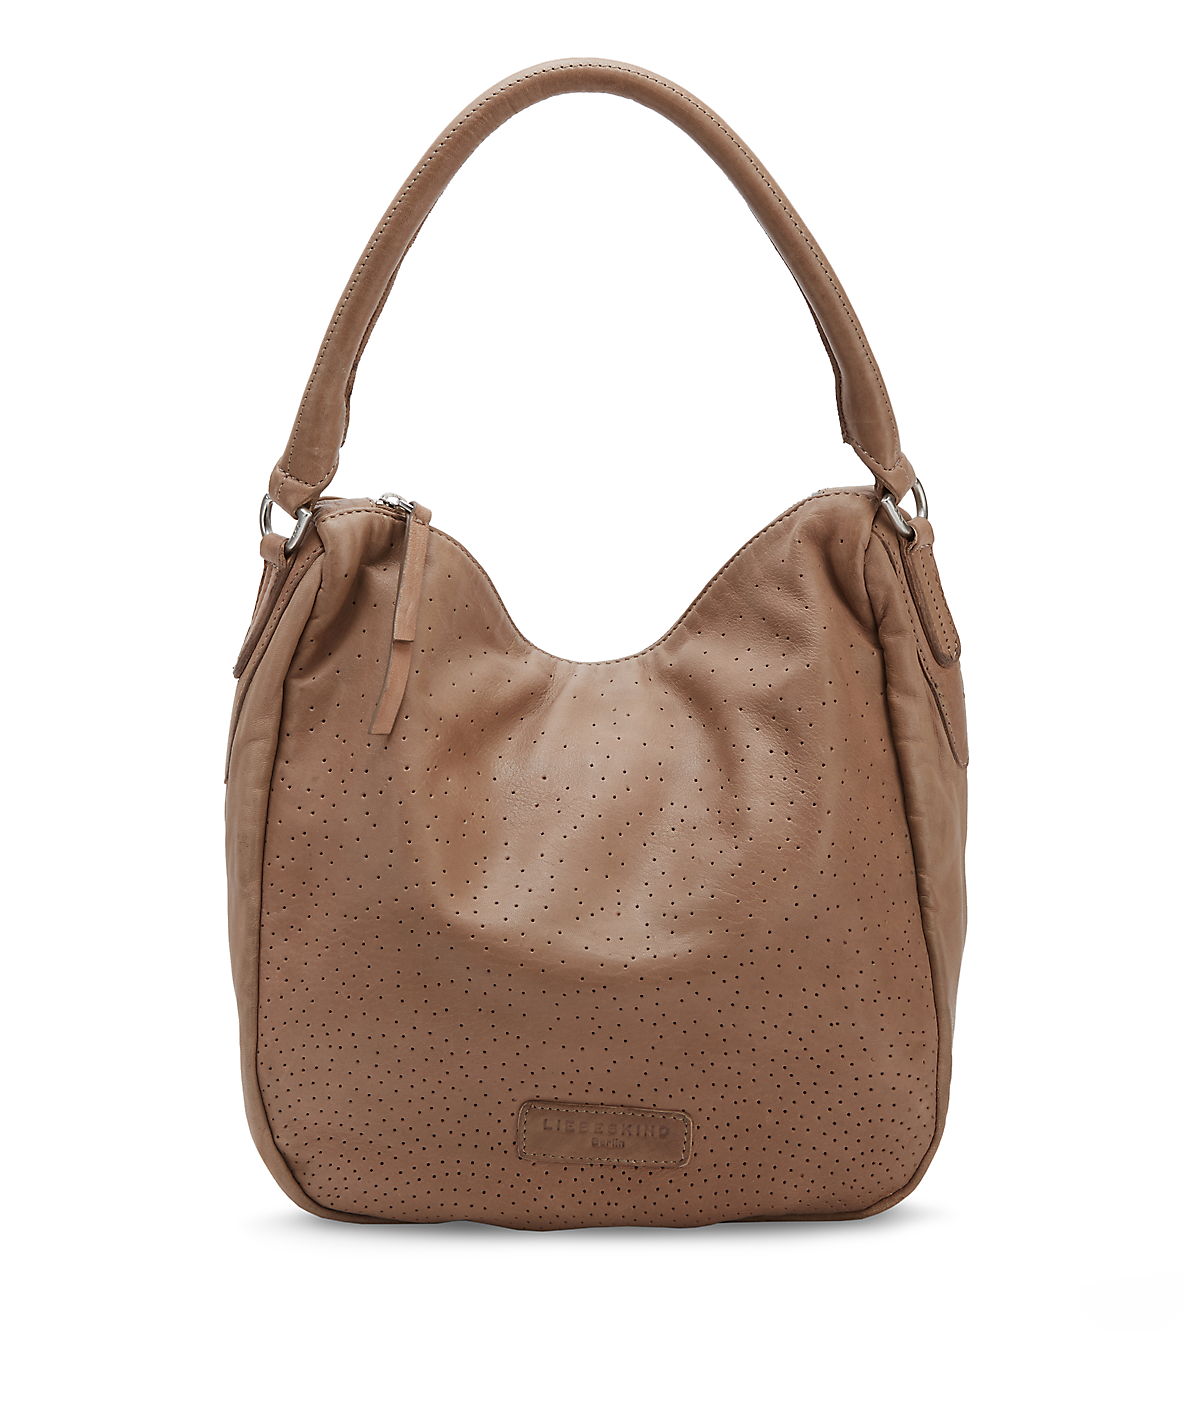 Sanjo shoulder bag from liebeskind